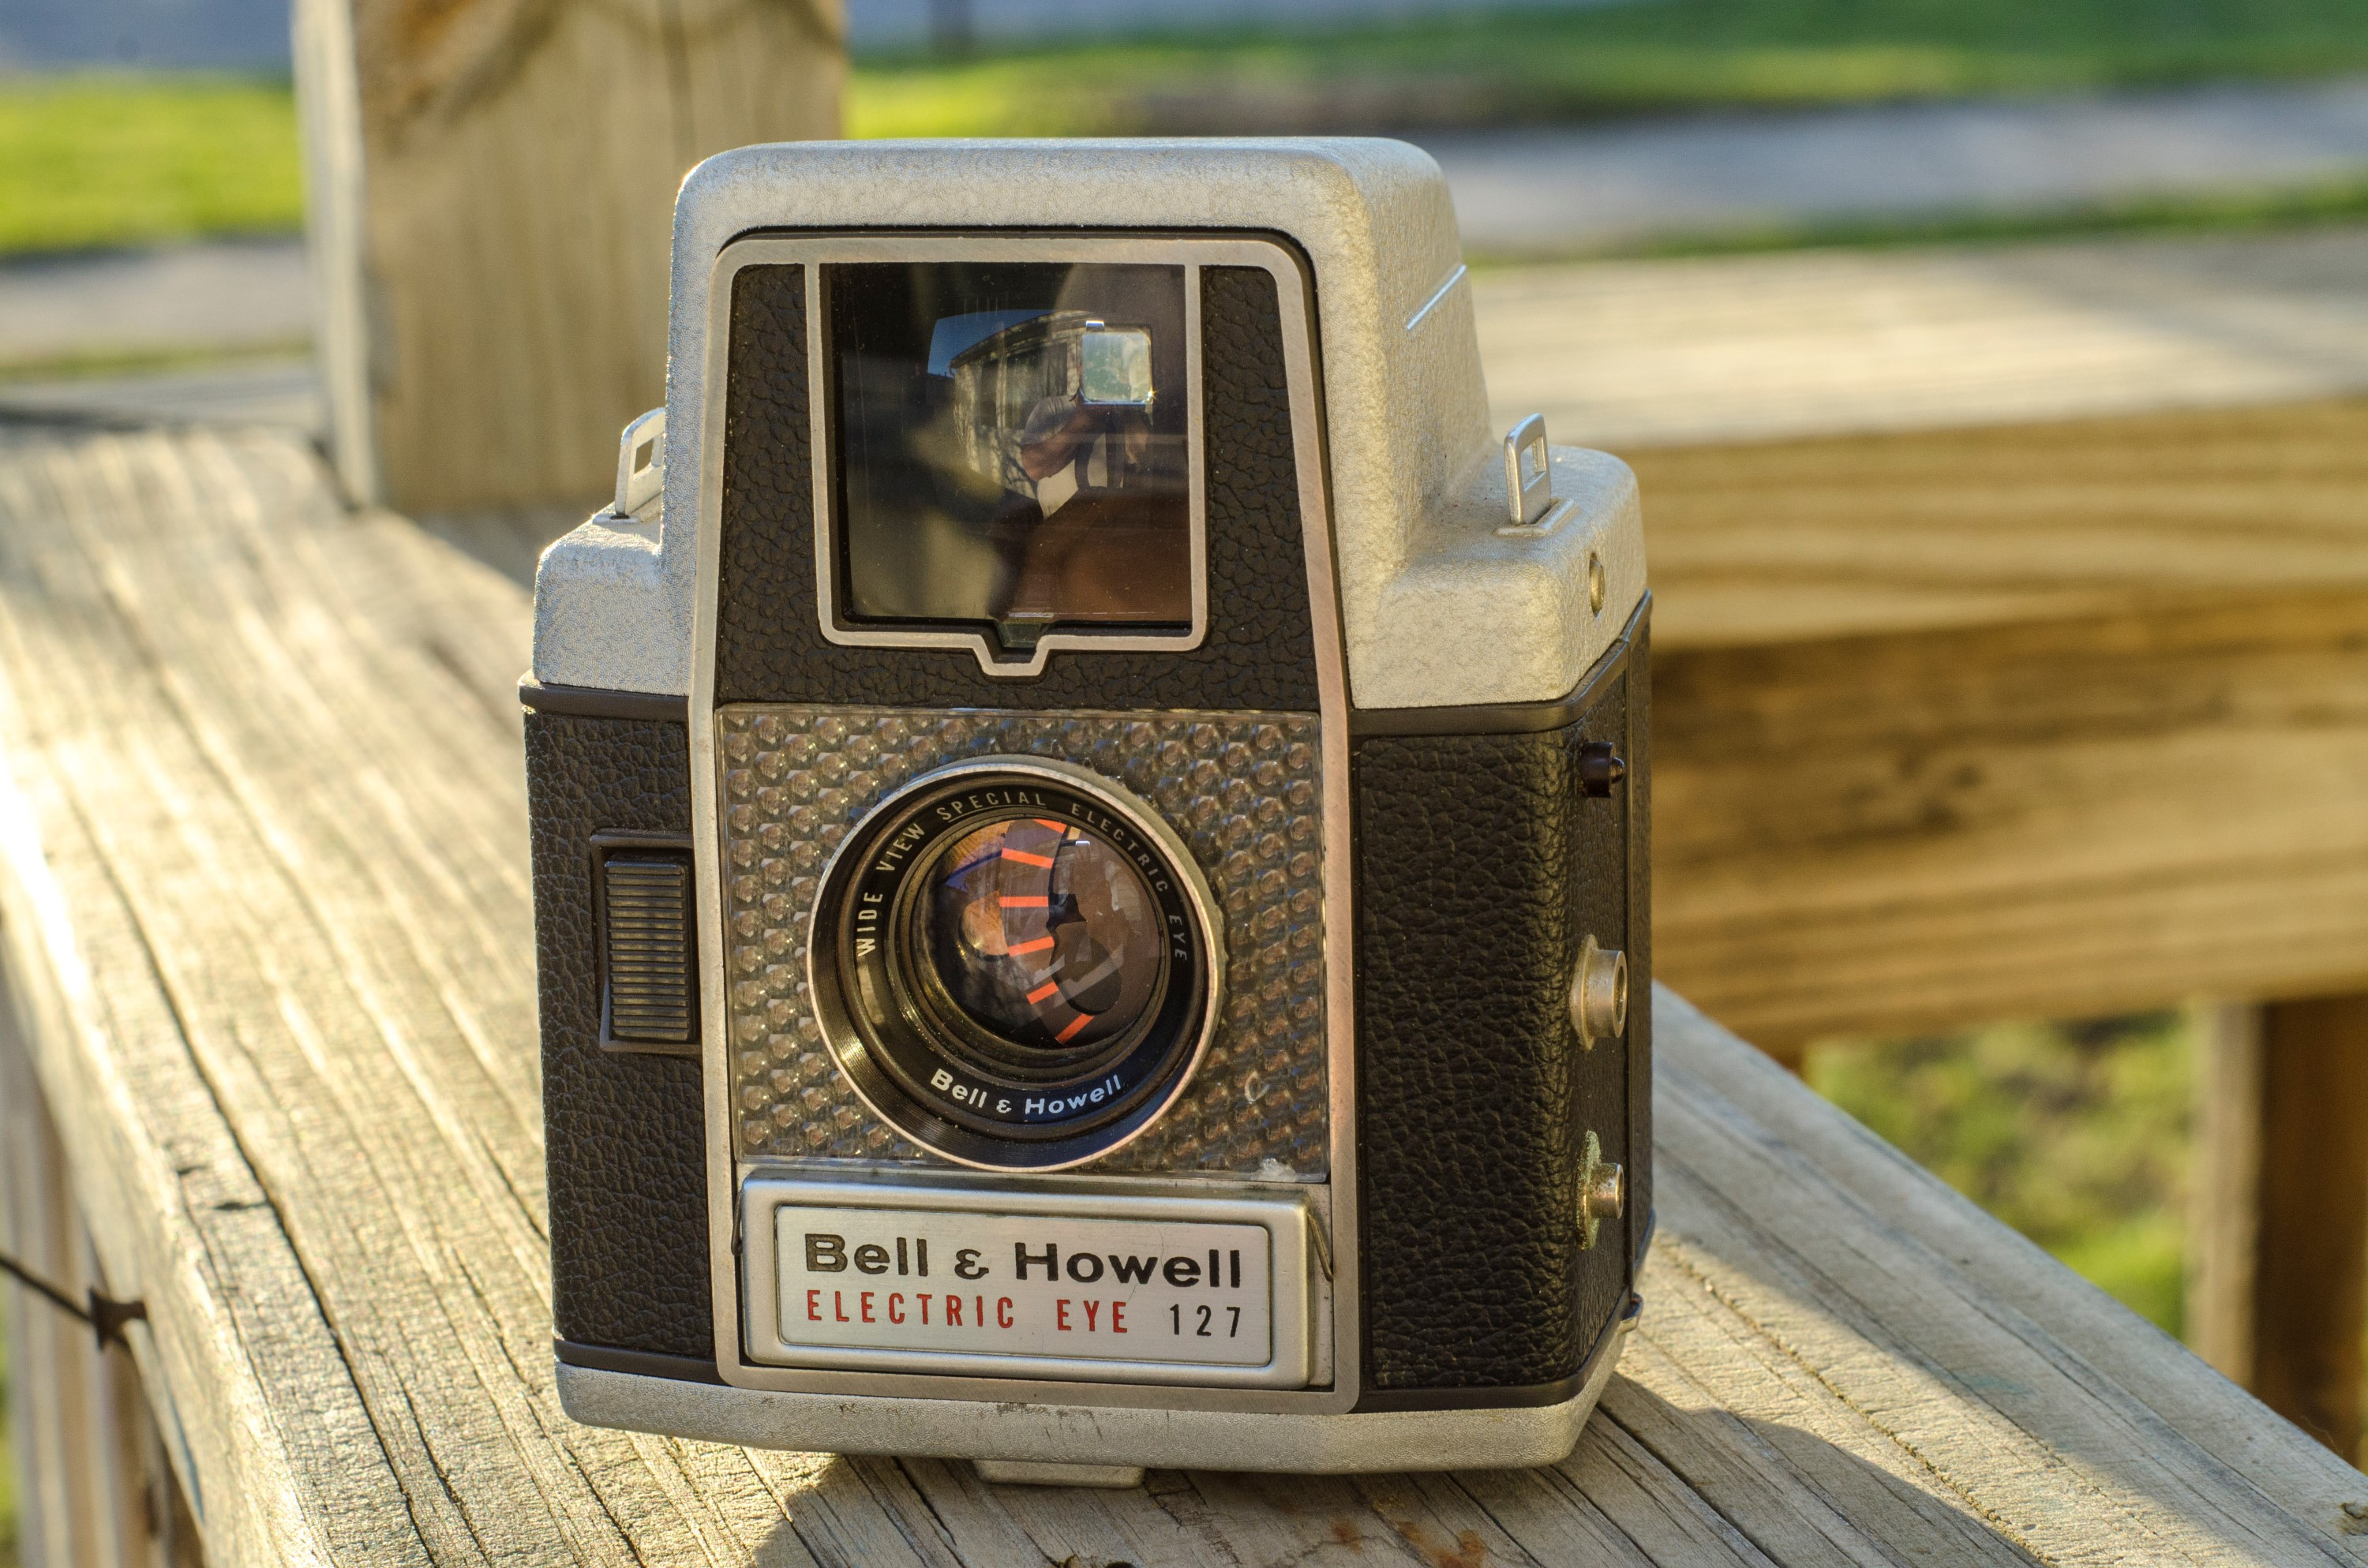 Bell & Howell Electric Eye 127 (1958)